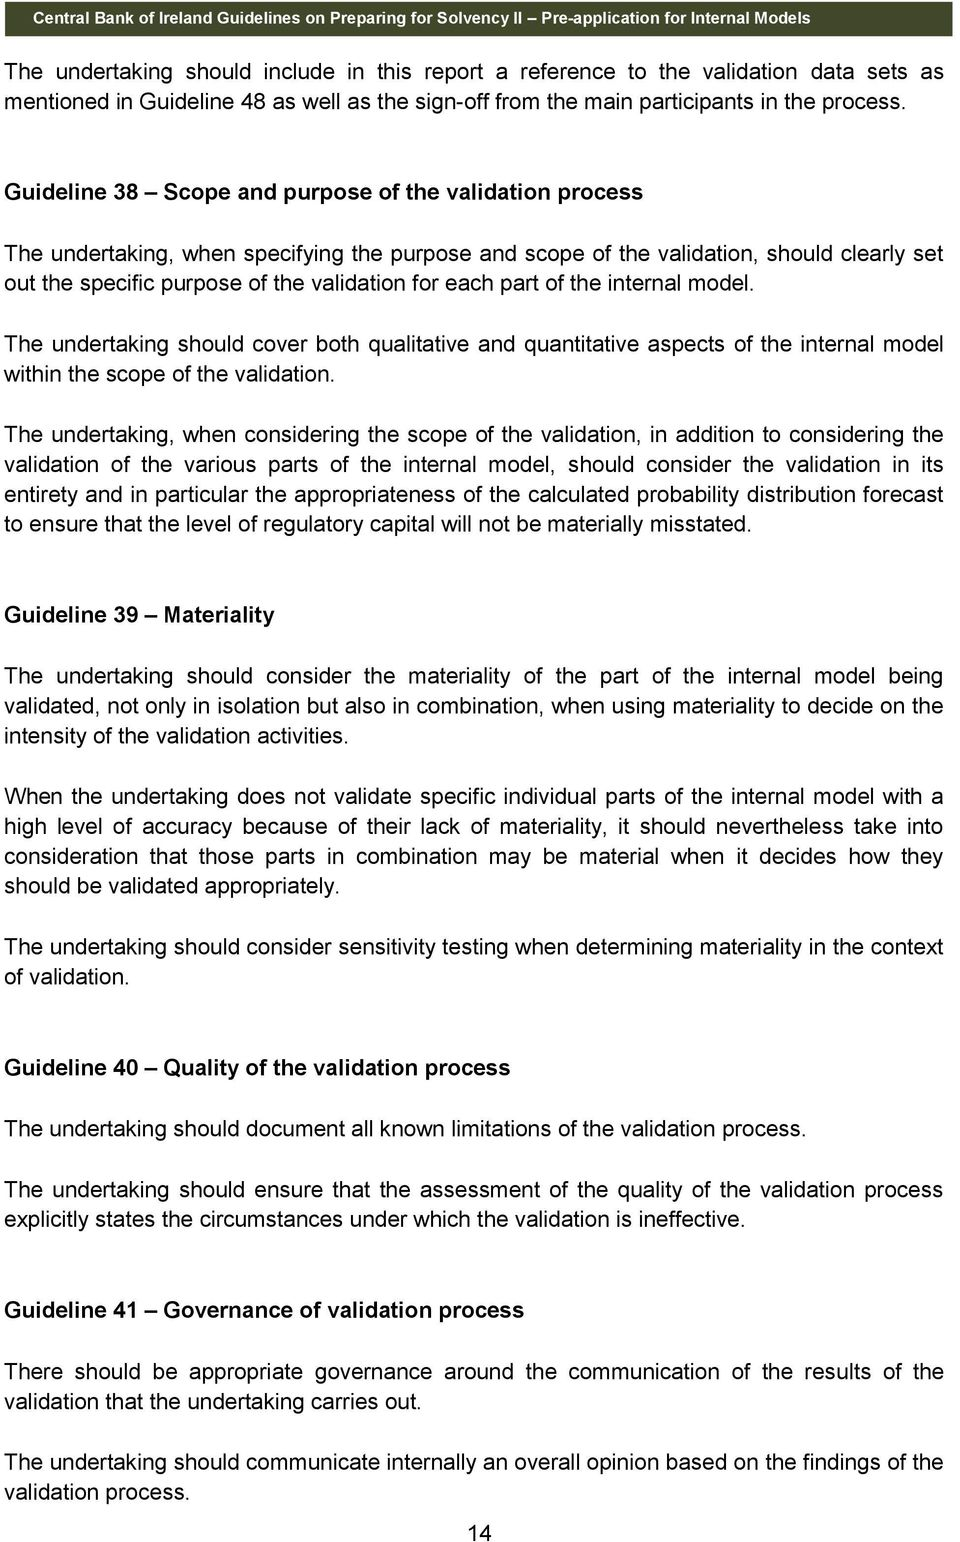 each part of the internal model. The undertaking should cover both qualitative and quantitative aspects of the internal model within the scope of the validation.